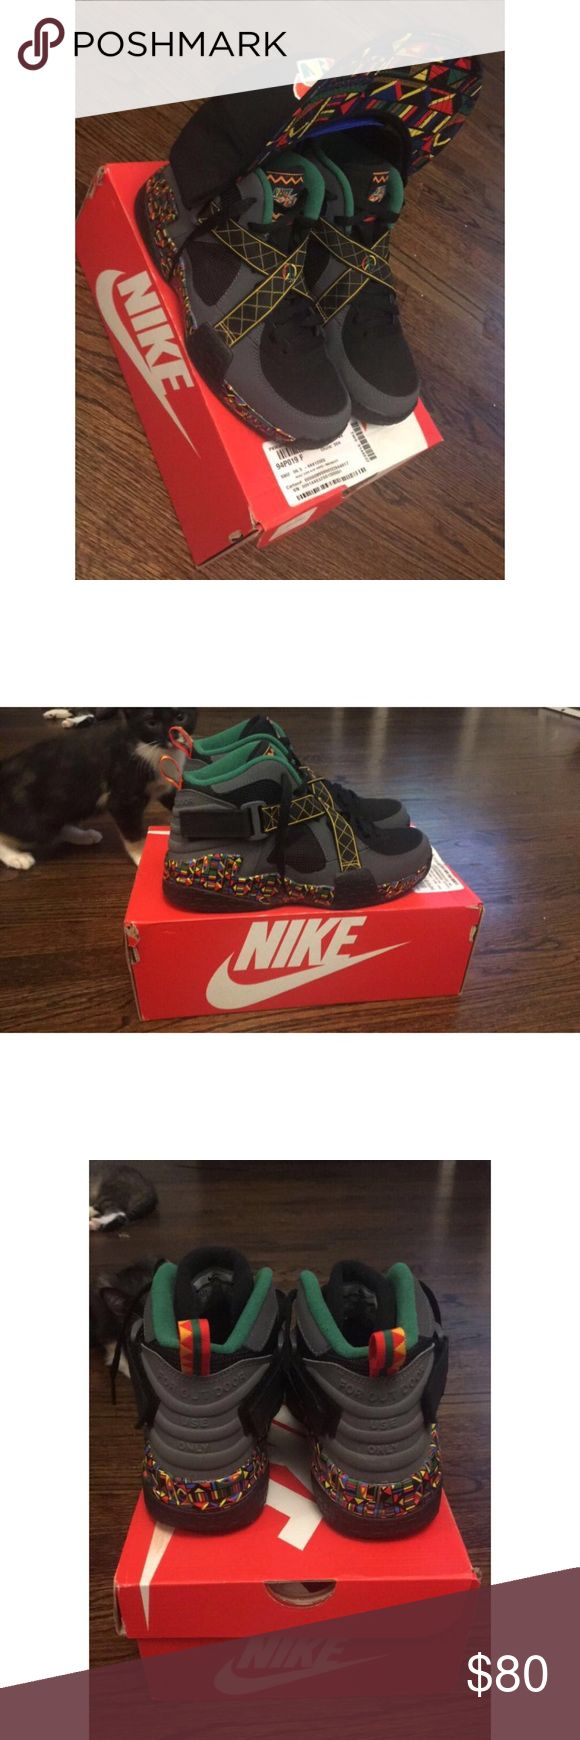 Nike Air Raid. Spike Lee's Urban Jungle. Nike Air Raid. Spike Lee's Urban Jungle. Grey, Black, Pine Green & Multi Colored. Size 6.5Y. Worn Twice. Original Box. (Hat Can Be Purchased Separately) Nike Shoes Sneakers